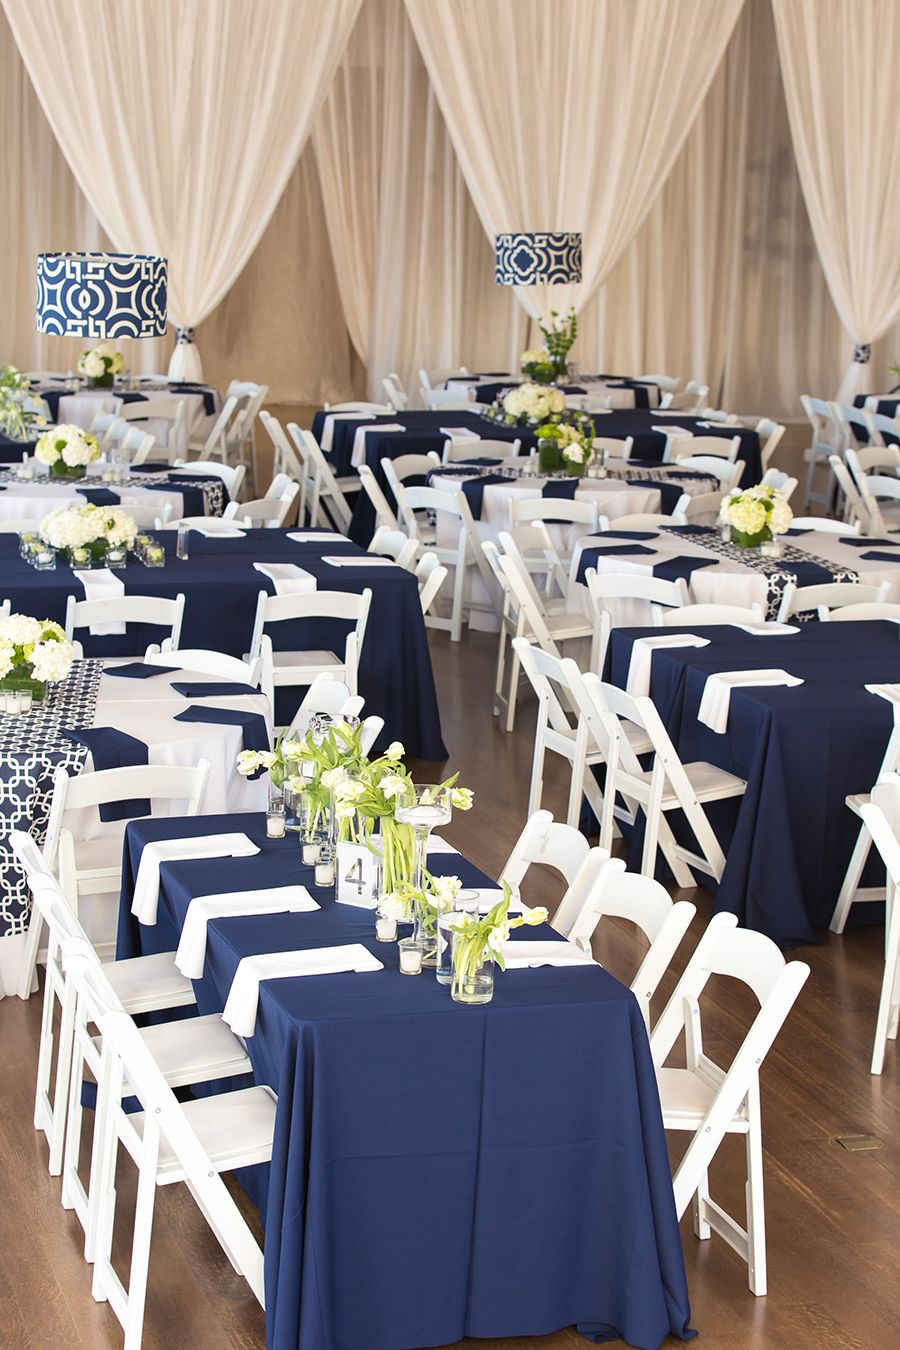 Classic Wedding Decor Ideas Navy And White With Geometric Accents